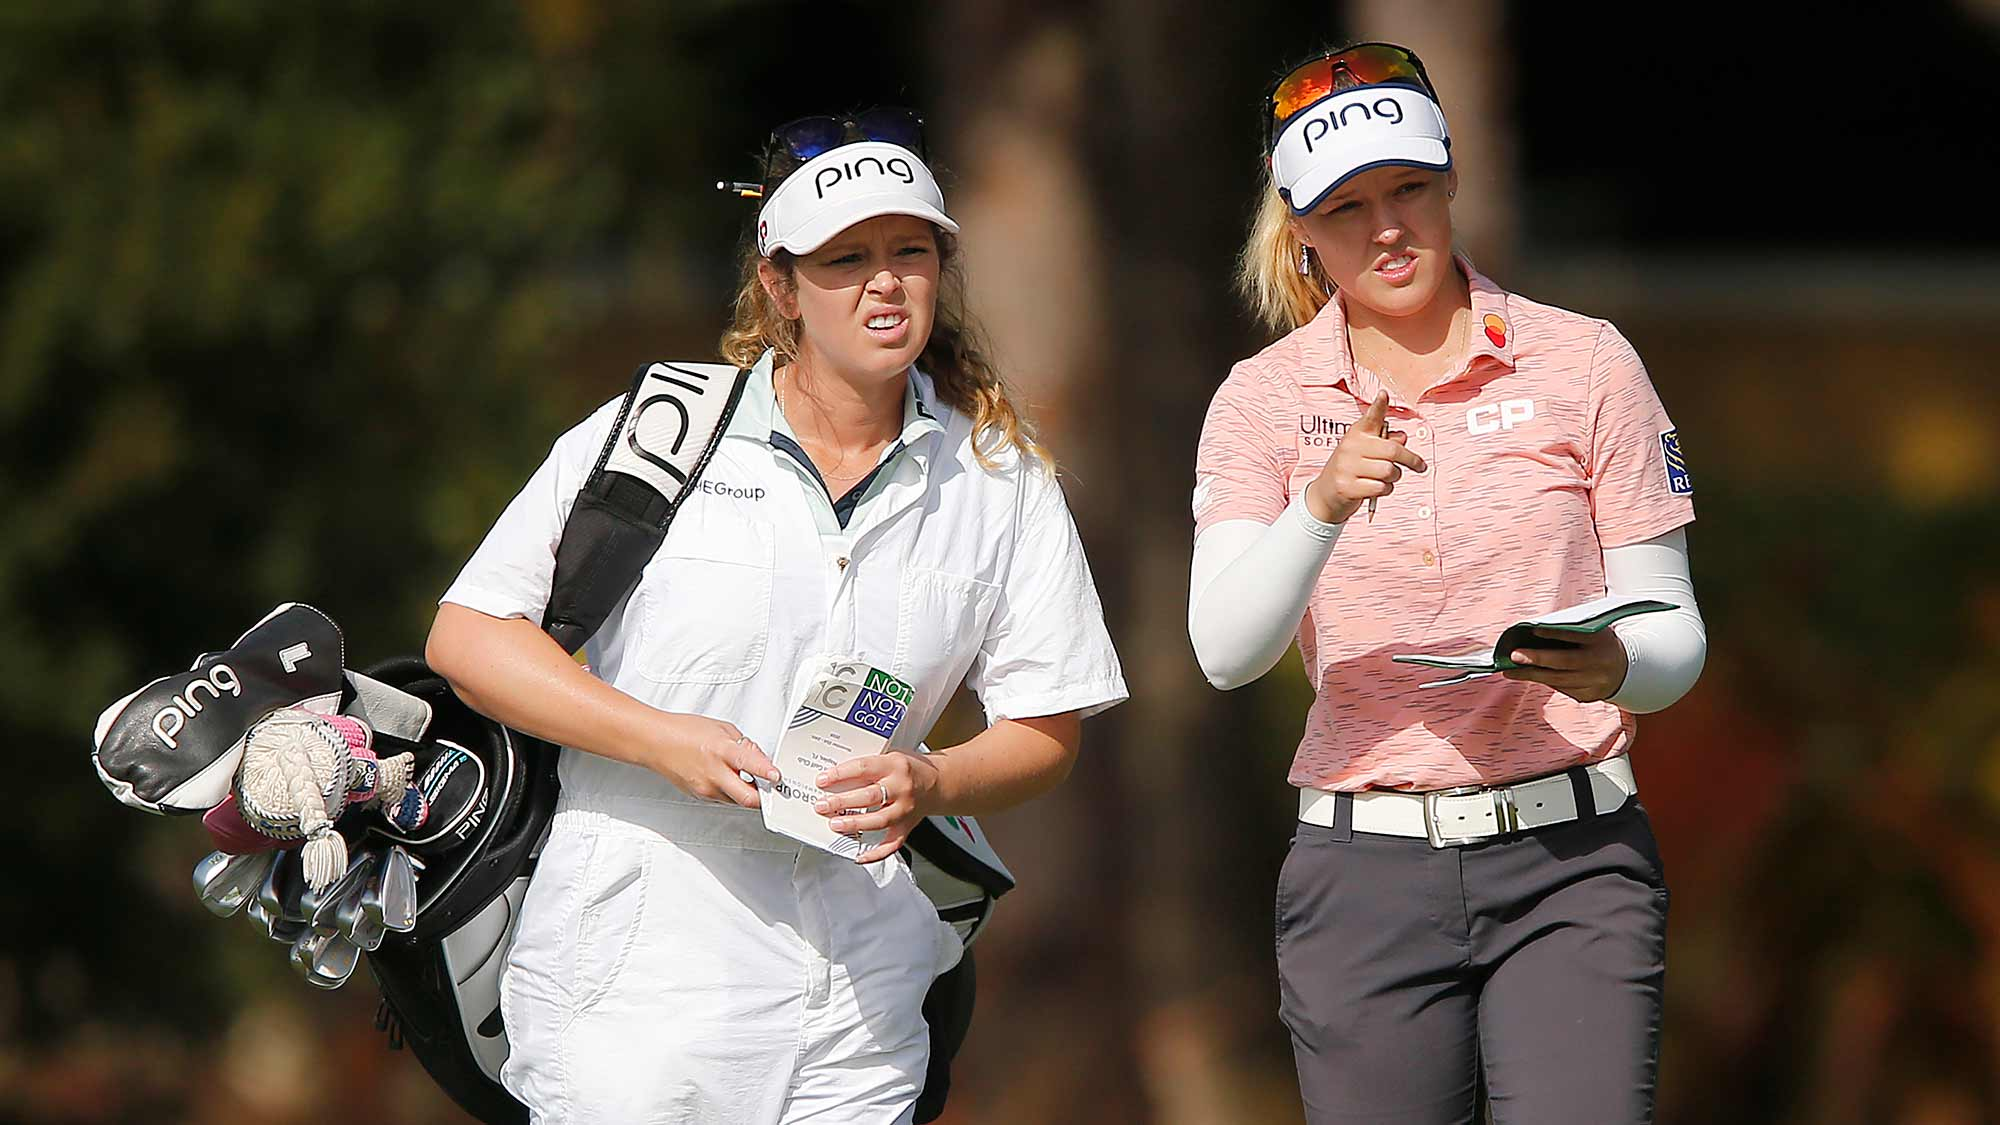 Brooke Henderson of Canada talks with her caddie on the first hole during the final round of the CME Group Tour Championship at Tiburon Golf Club on November 24, 2019 in Naples, Florida